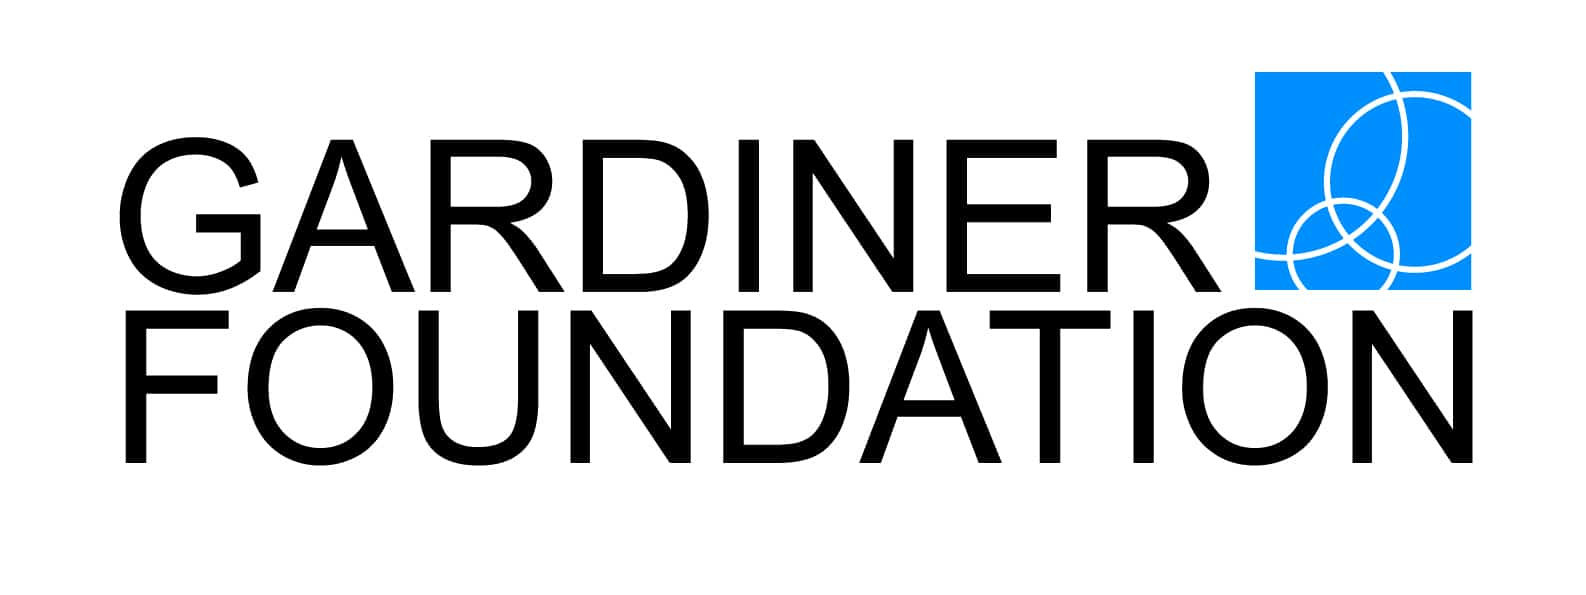 Gardiner Foundation